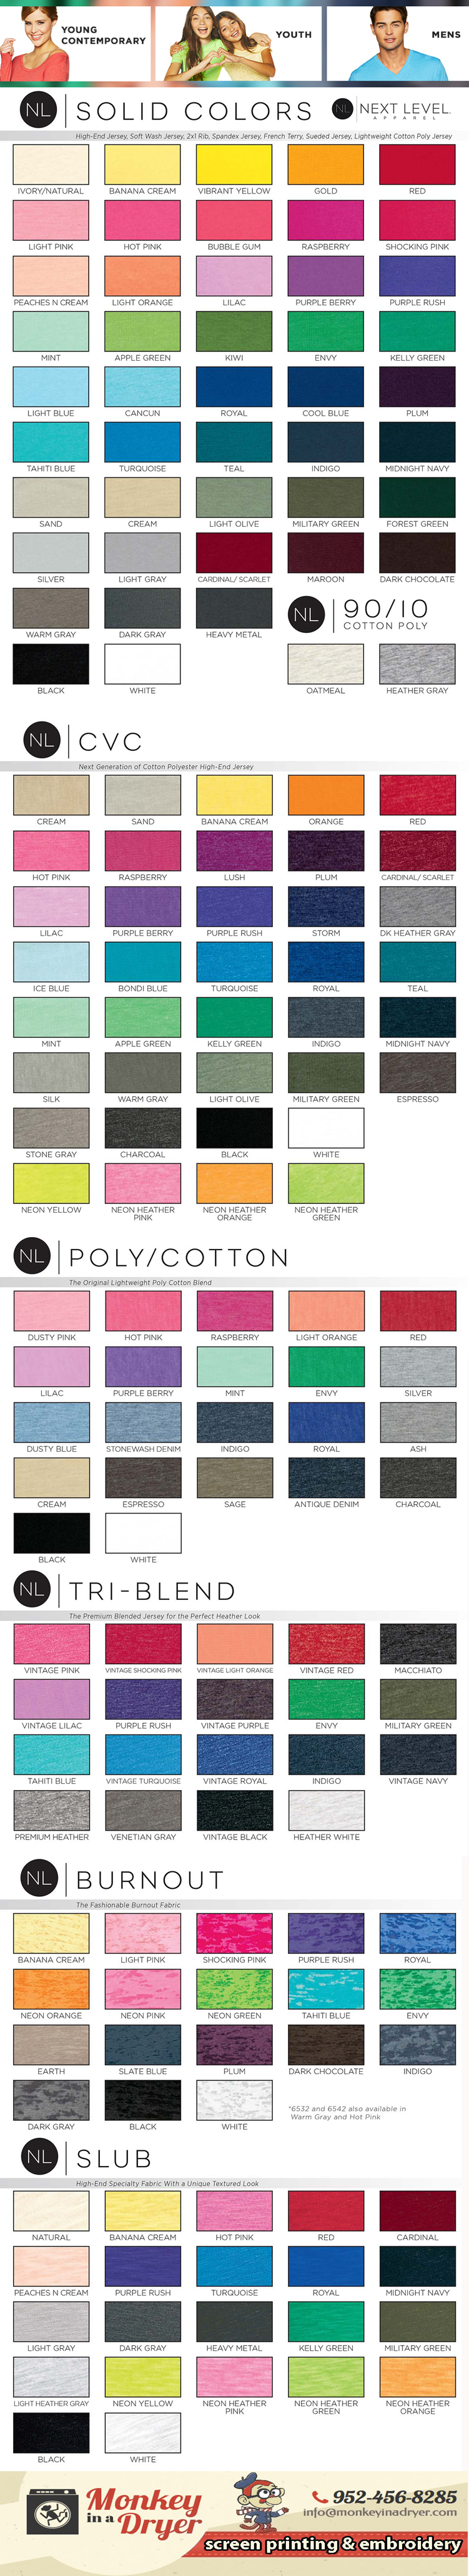 Next Level Apparel Swatch Color Chart